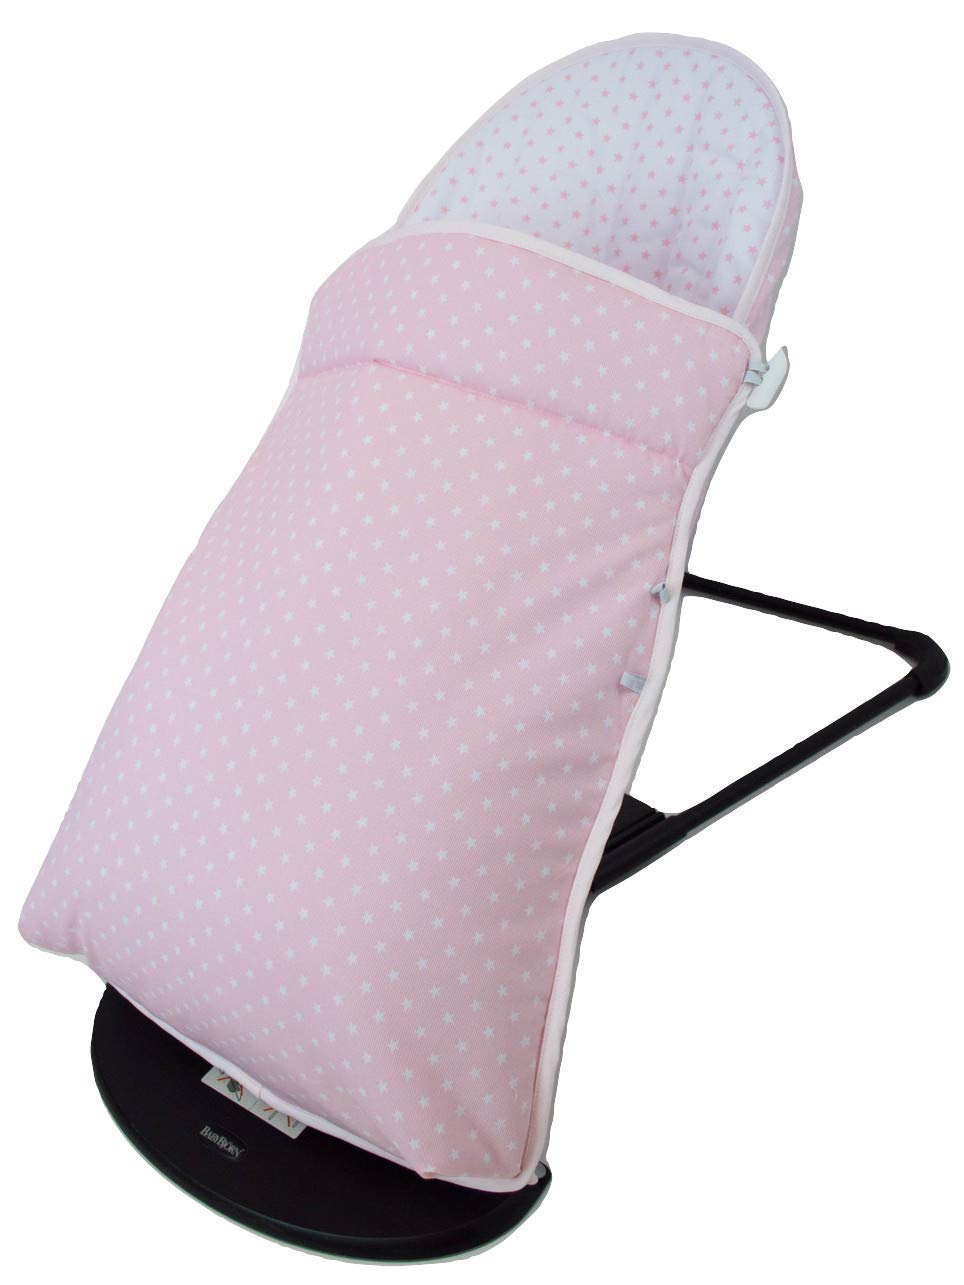 Baby Bouncer Cover and Footmuff for BabyBjörn Balance and Soft Personalized with Embroidered Name. Several Models Available (Stars Pink) Borda y más Upholstery for totally replacing the original Babybjörn baby bouncer upholstery. It consists of FOOTMUFF and COVER. Compatible with Babybjörn Balance and Babybjörn Balance Soft. Made in natural soft and breathable pique, without chemical substances perfect for your baby as it reduces your baby's skin irritation or reaction. With our footmuff changeable into cover you will keep your baby war in the coldest days at the same time you provide your baby bouncer a new image. You only need to fit together the cover and the upholstery by the zippers and velcro system. The footmuff adjustable to 3 different positions. You won't need to worry about the blanket again; your baby will be able to play and sleep without being cold. Design: Made in pink pique with white stars combined with white pique and pink stars. 100% made in Spain with the best finishes and qualities. It can be easily removed and wash in the washing machine, programmes lower than 30 degrees and using organic or neutral soap. 4